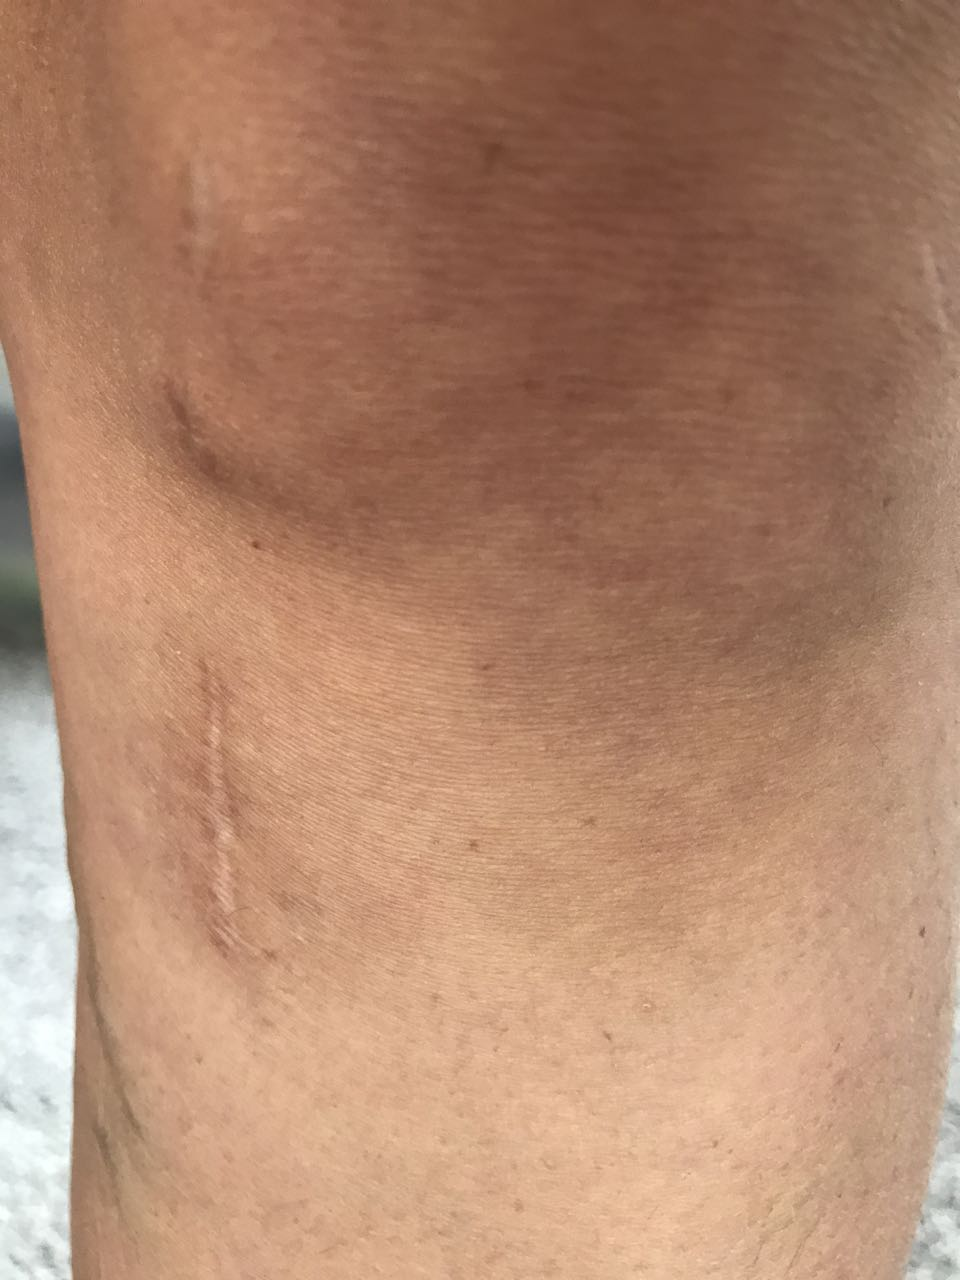 42168ee4f06 ACL Repair Surgery - What They Don't Tell You (and My Recovery ...